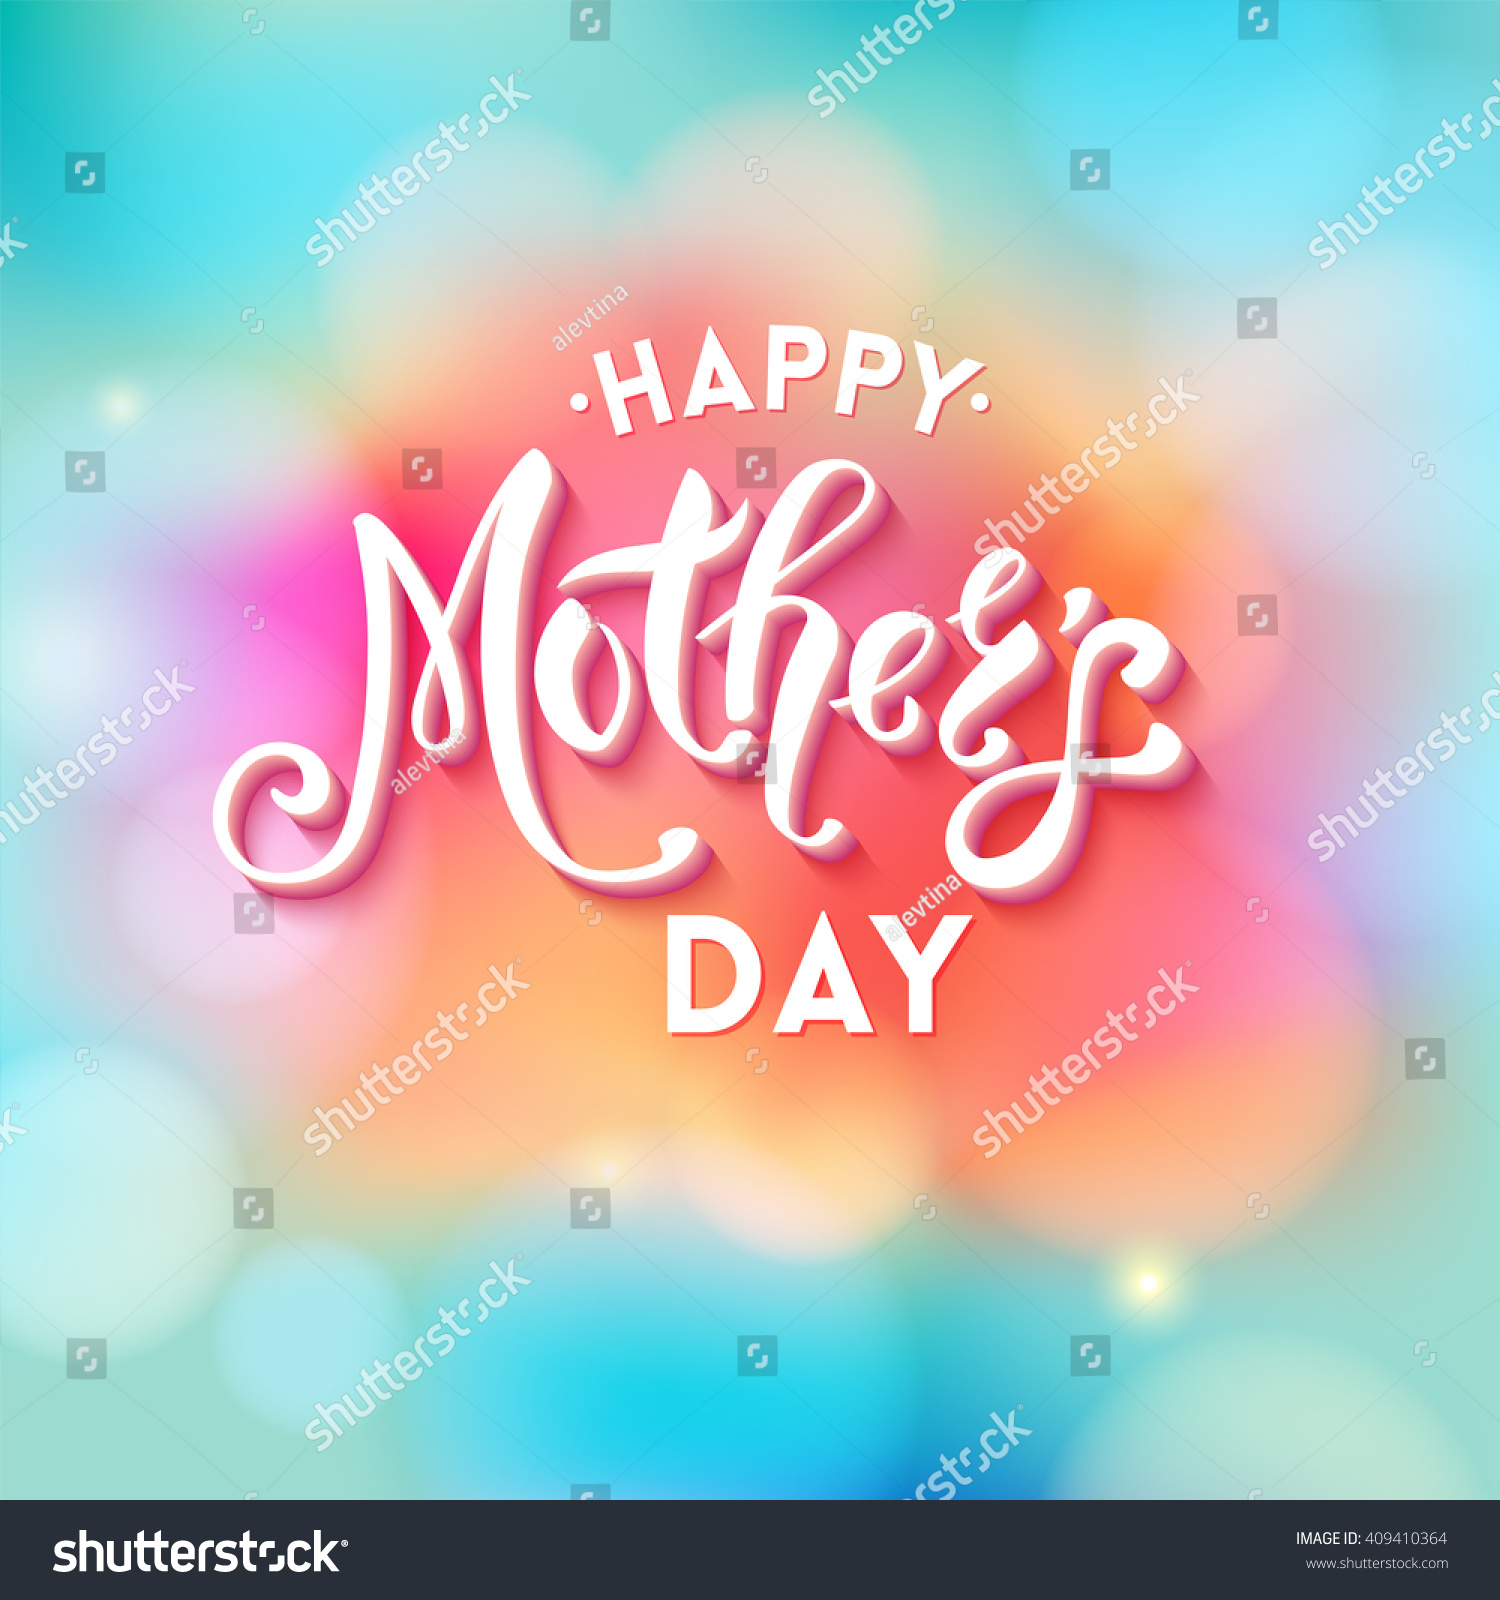 Happy mothers day text greeting card stock vector 409410364 happy mothers day text greeting card template in square with obscured pink blue and green kristyandbryce Choice Image